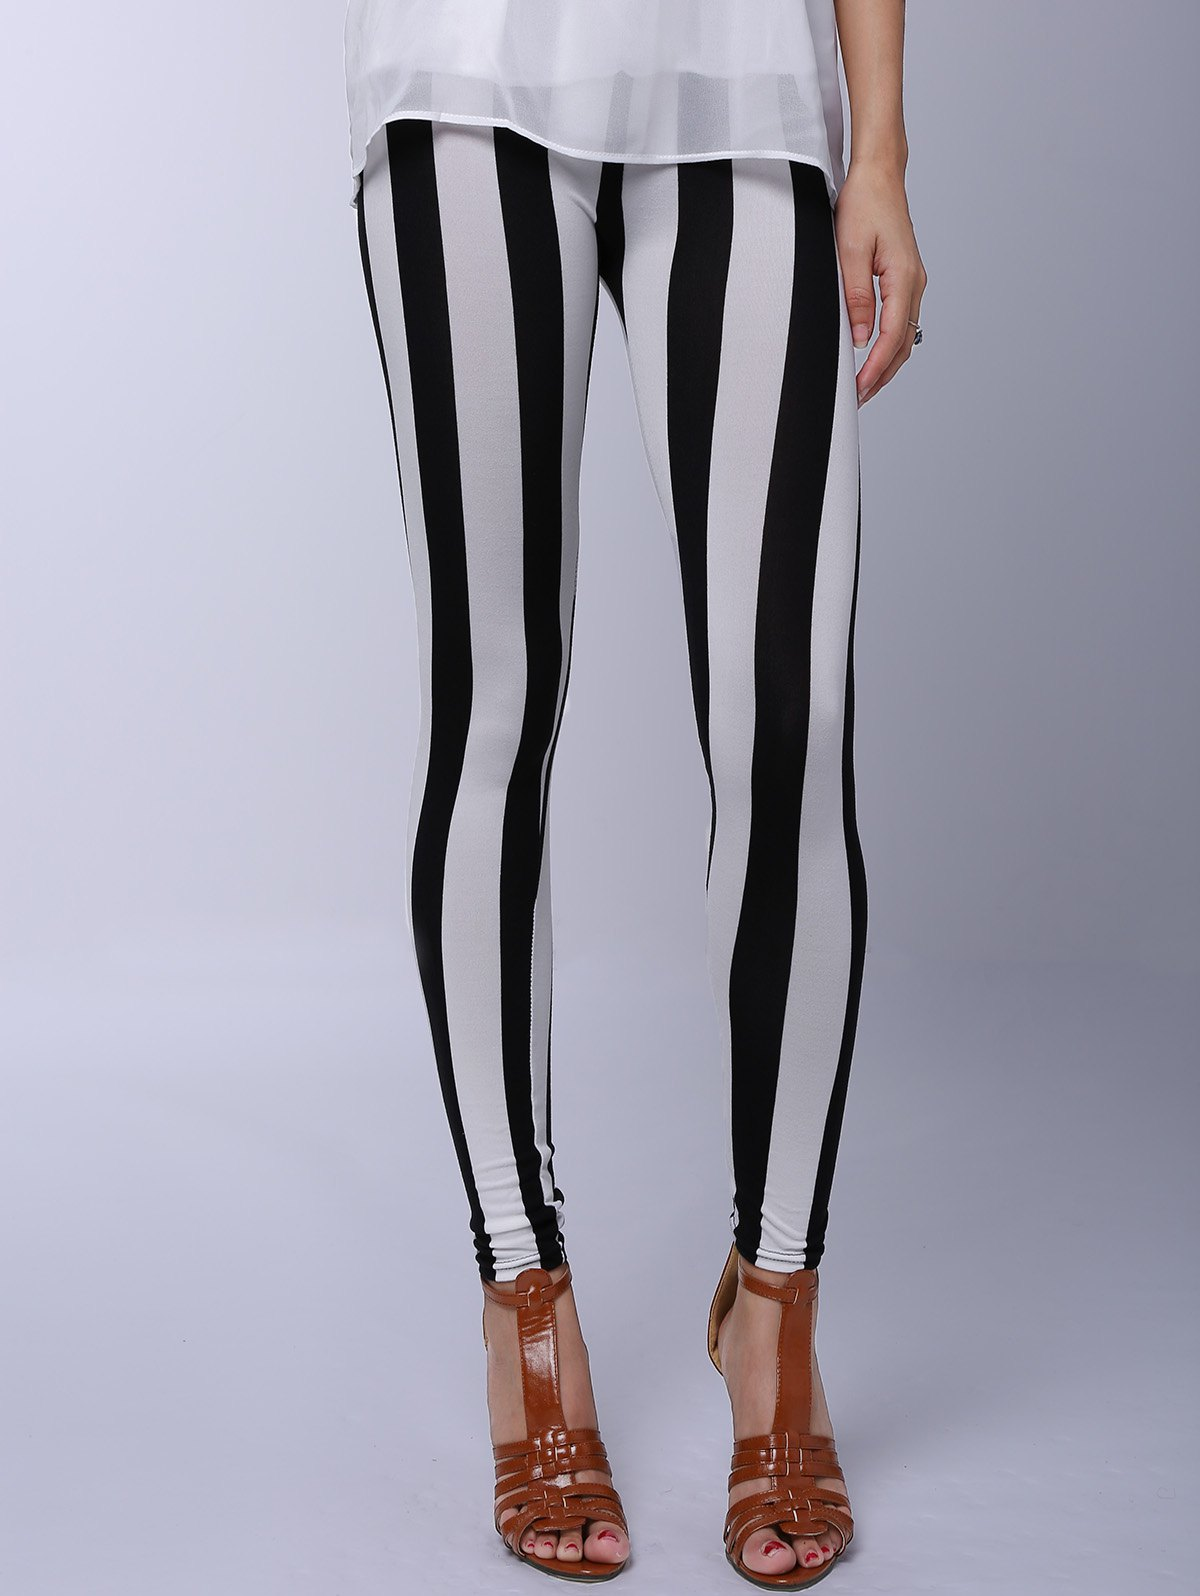 Fancy Stylish Striped Printed Stretchy Leggings For Women